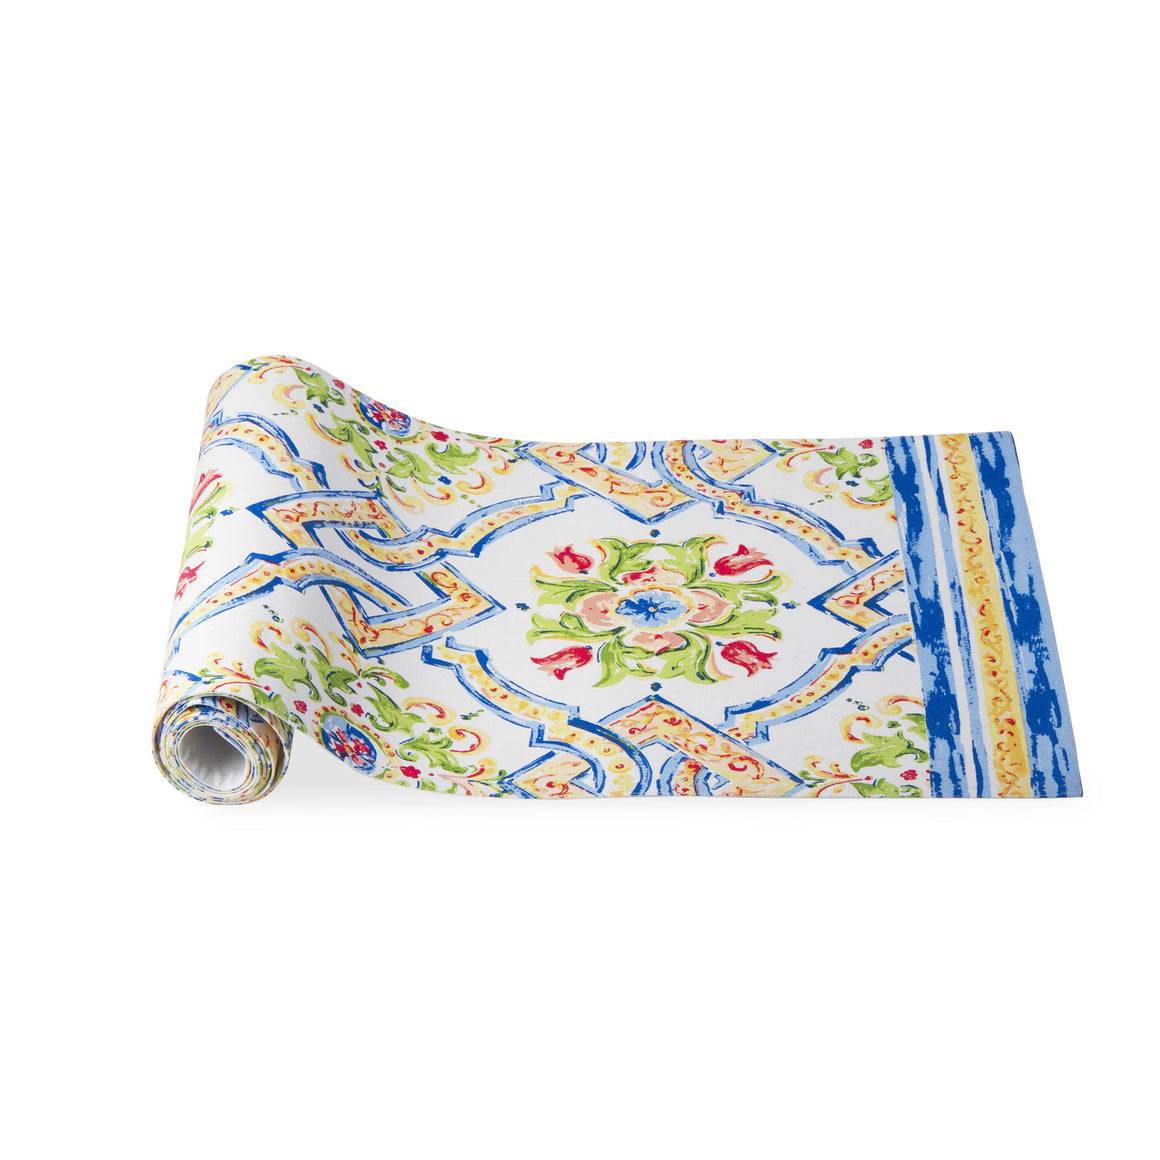 Capri Table Runner